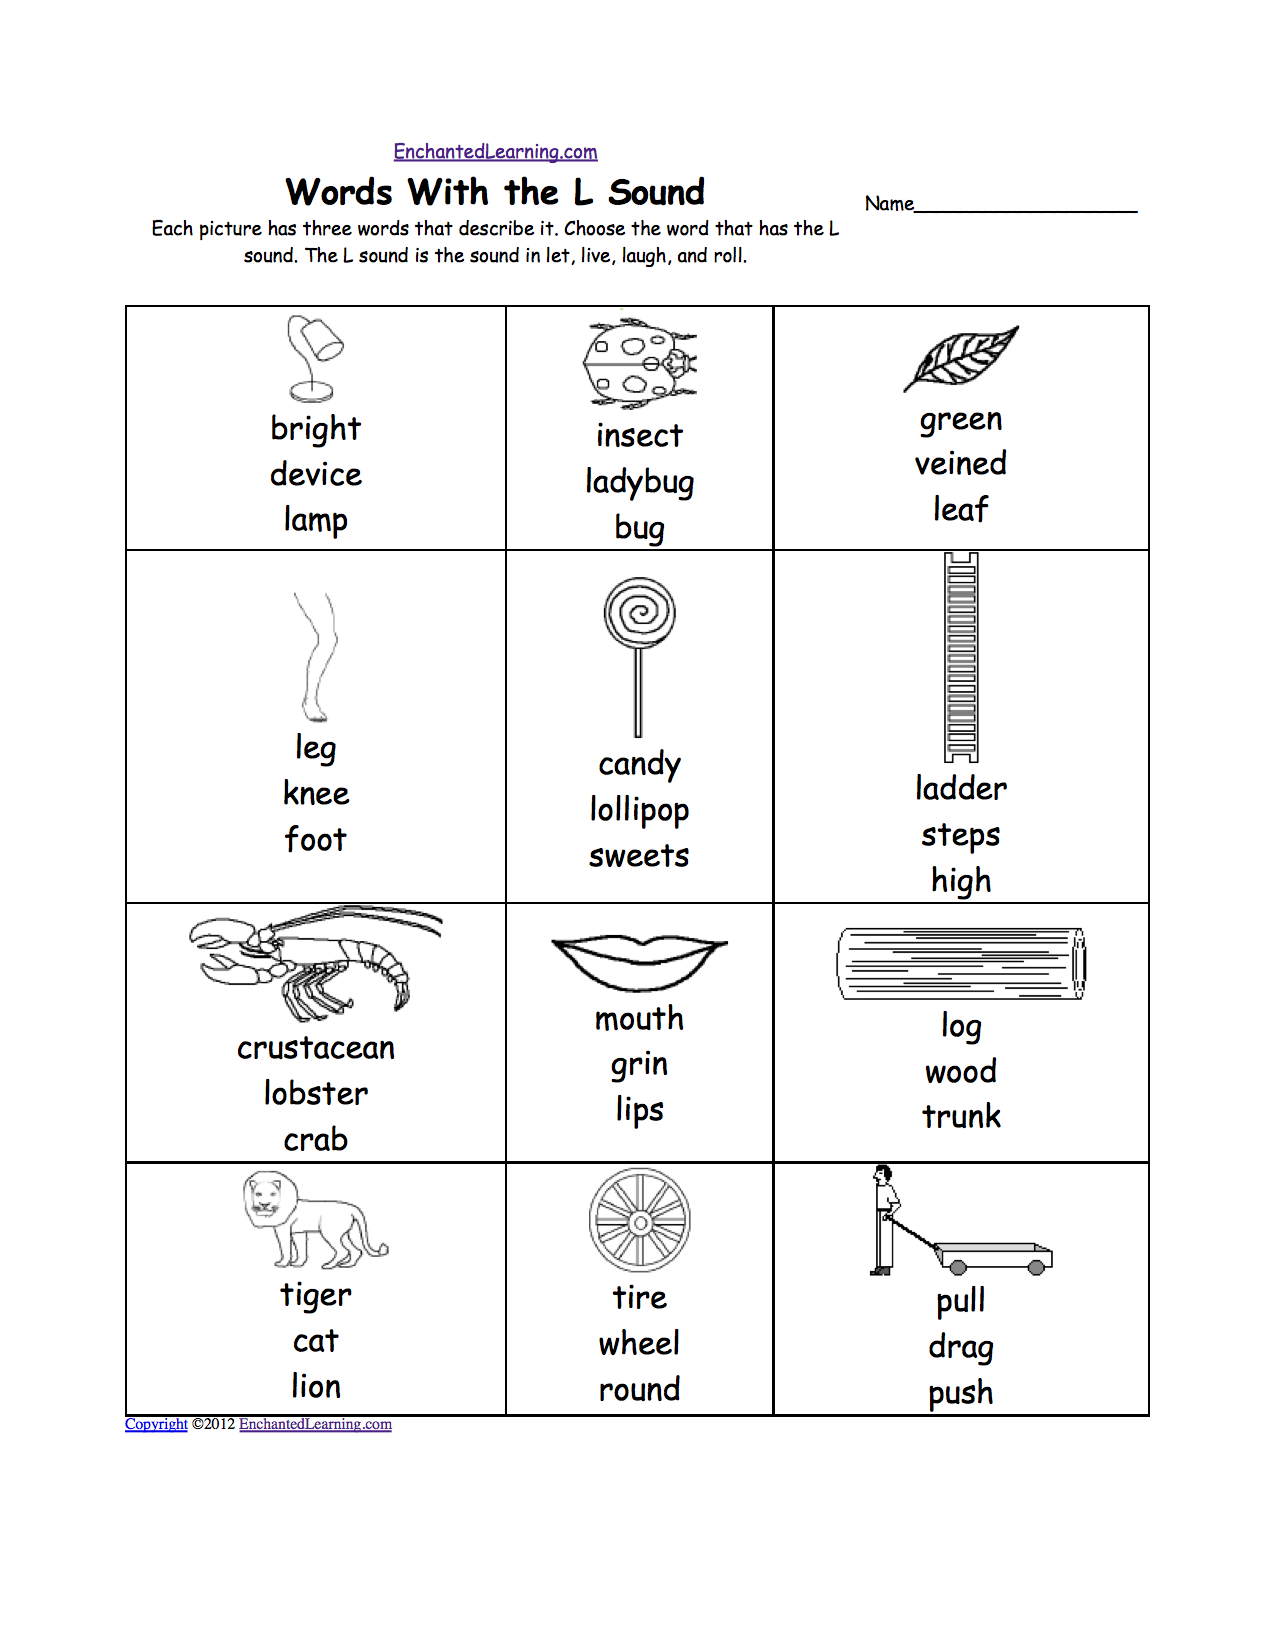 "letter blend worksheets KS"" Sound Phonics Worksheet"